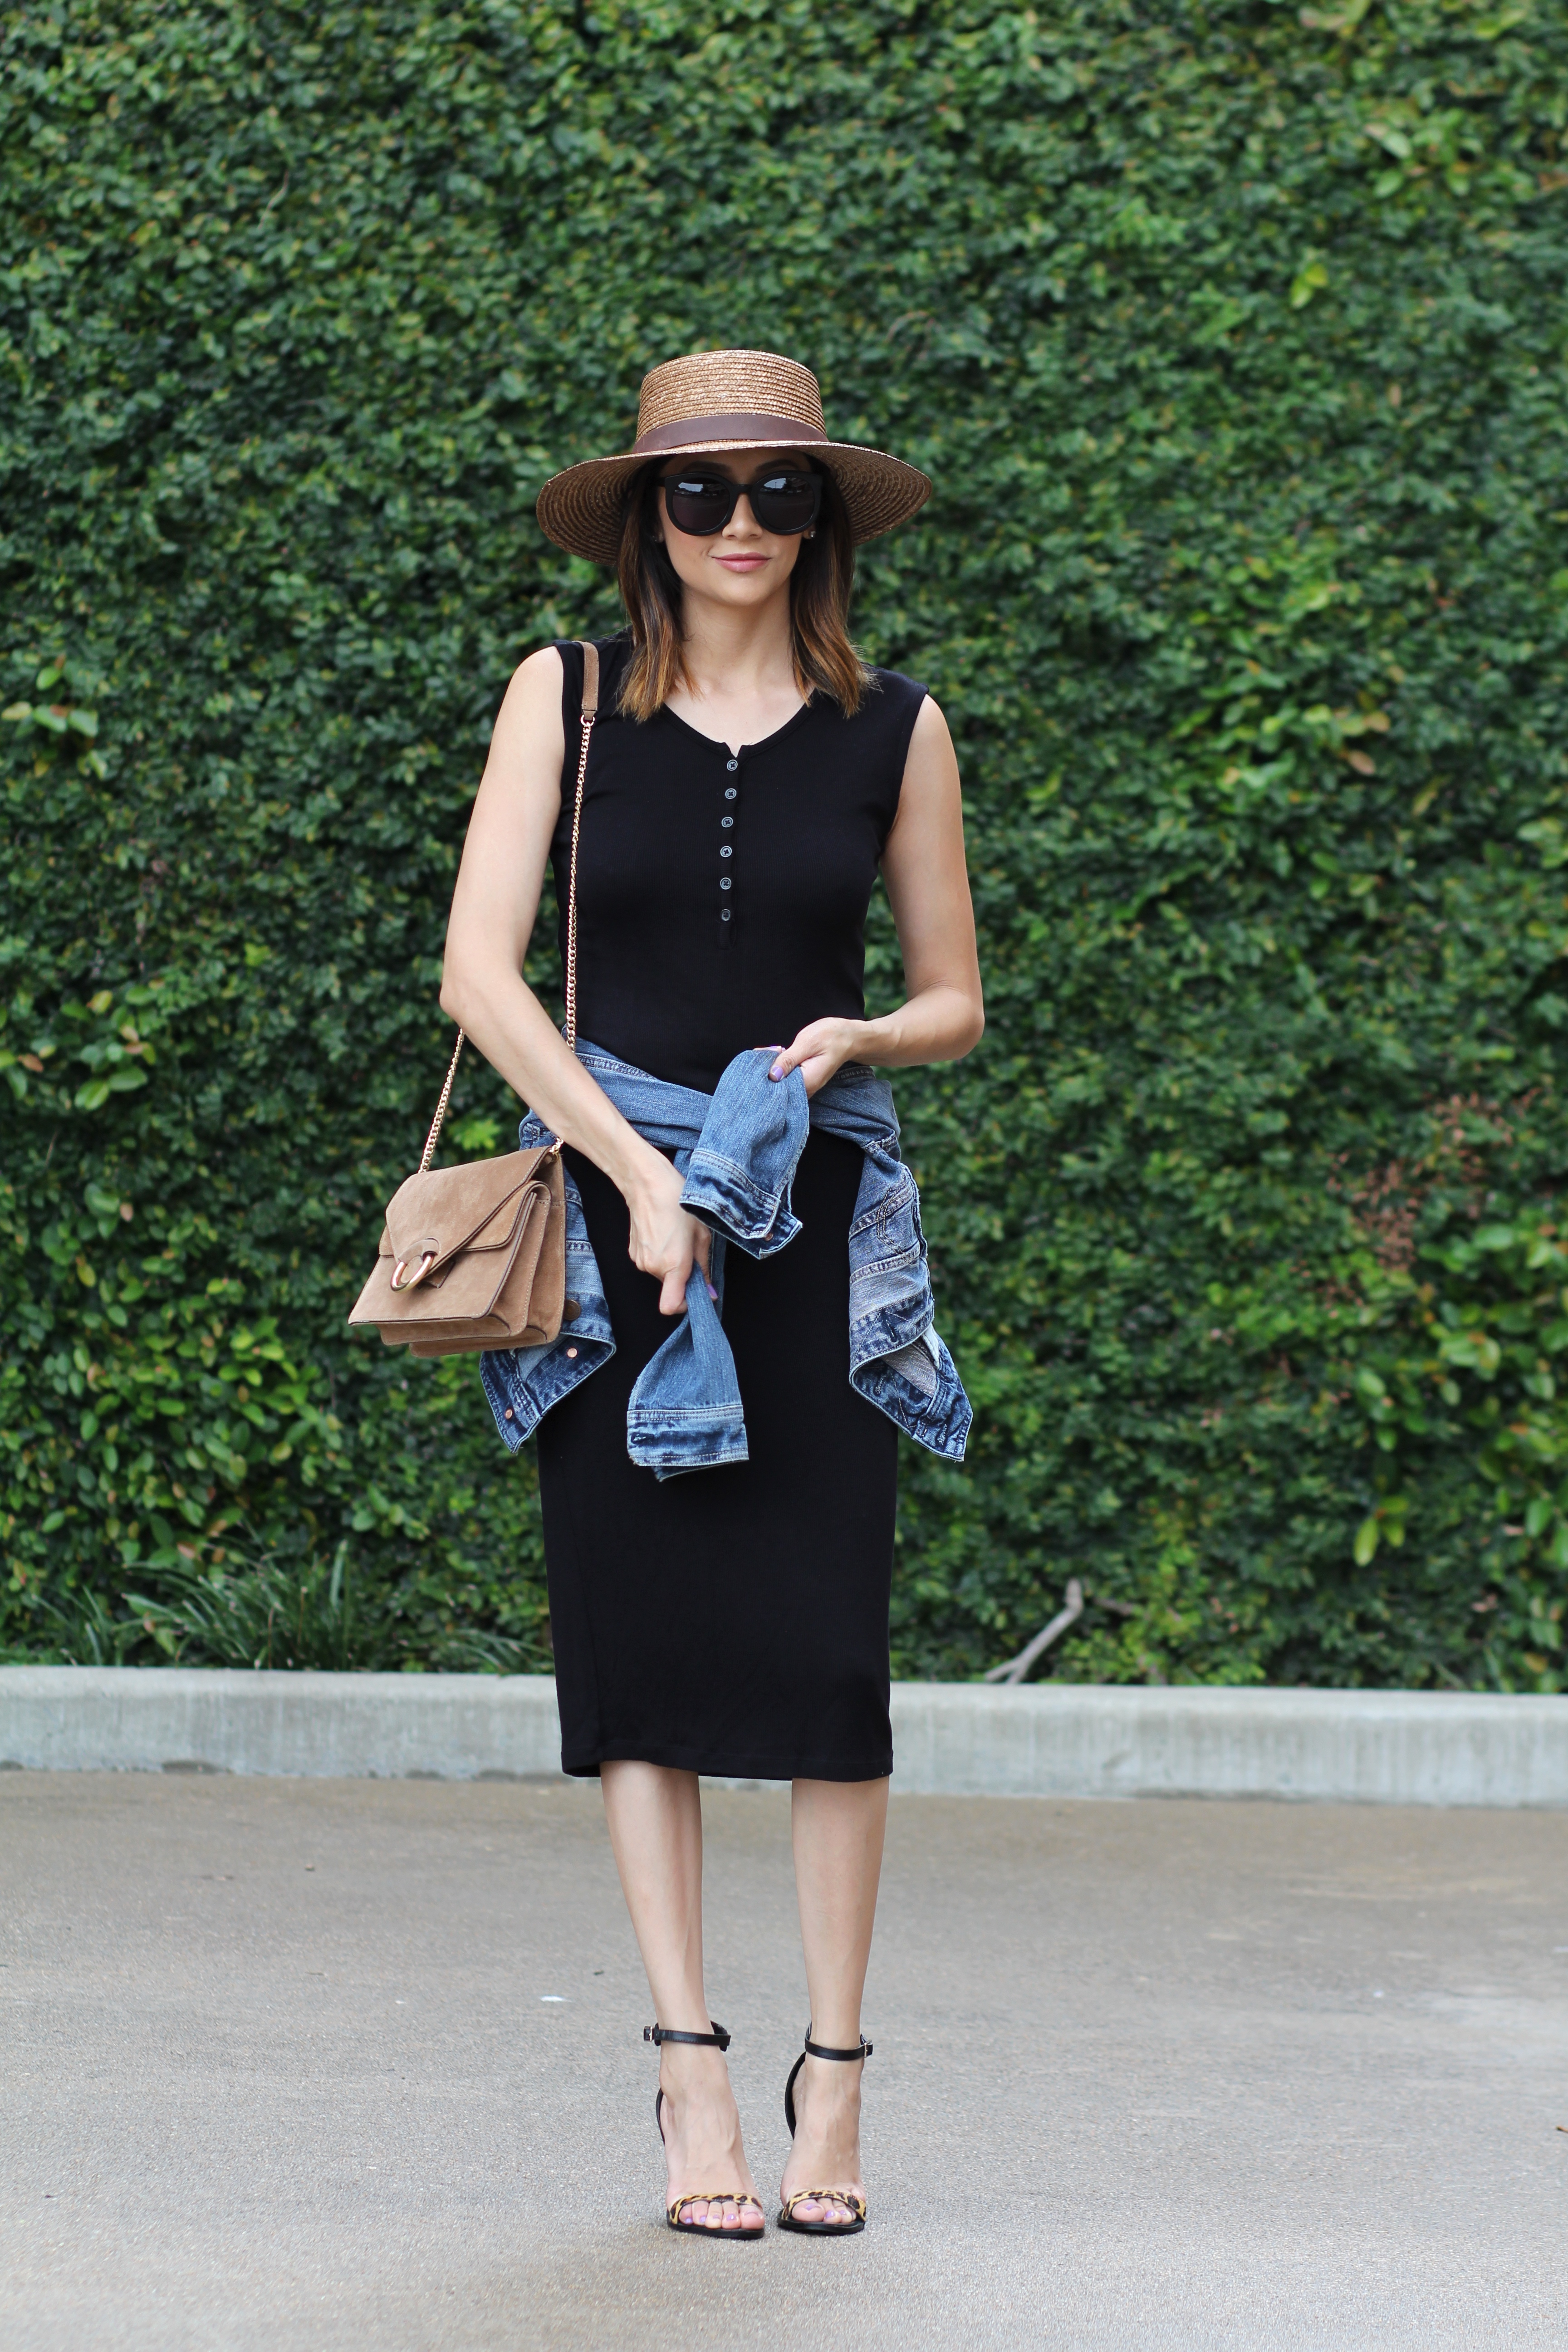 Summer Chic Look | LBD | Boater Hat